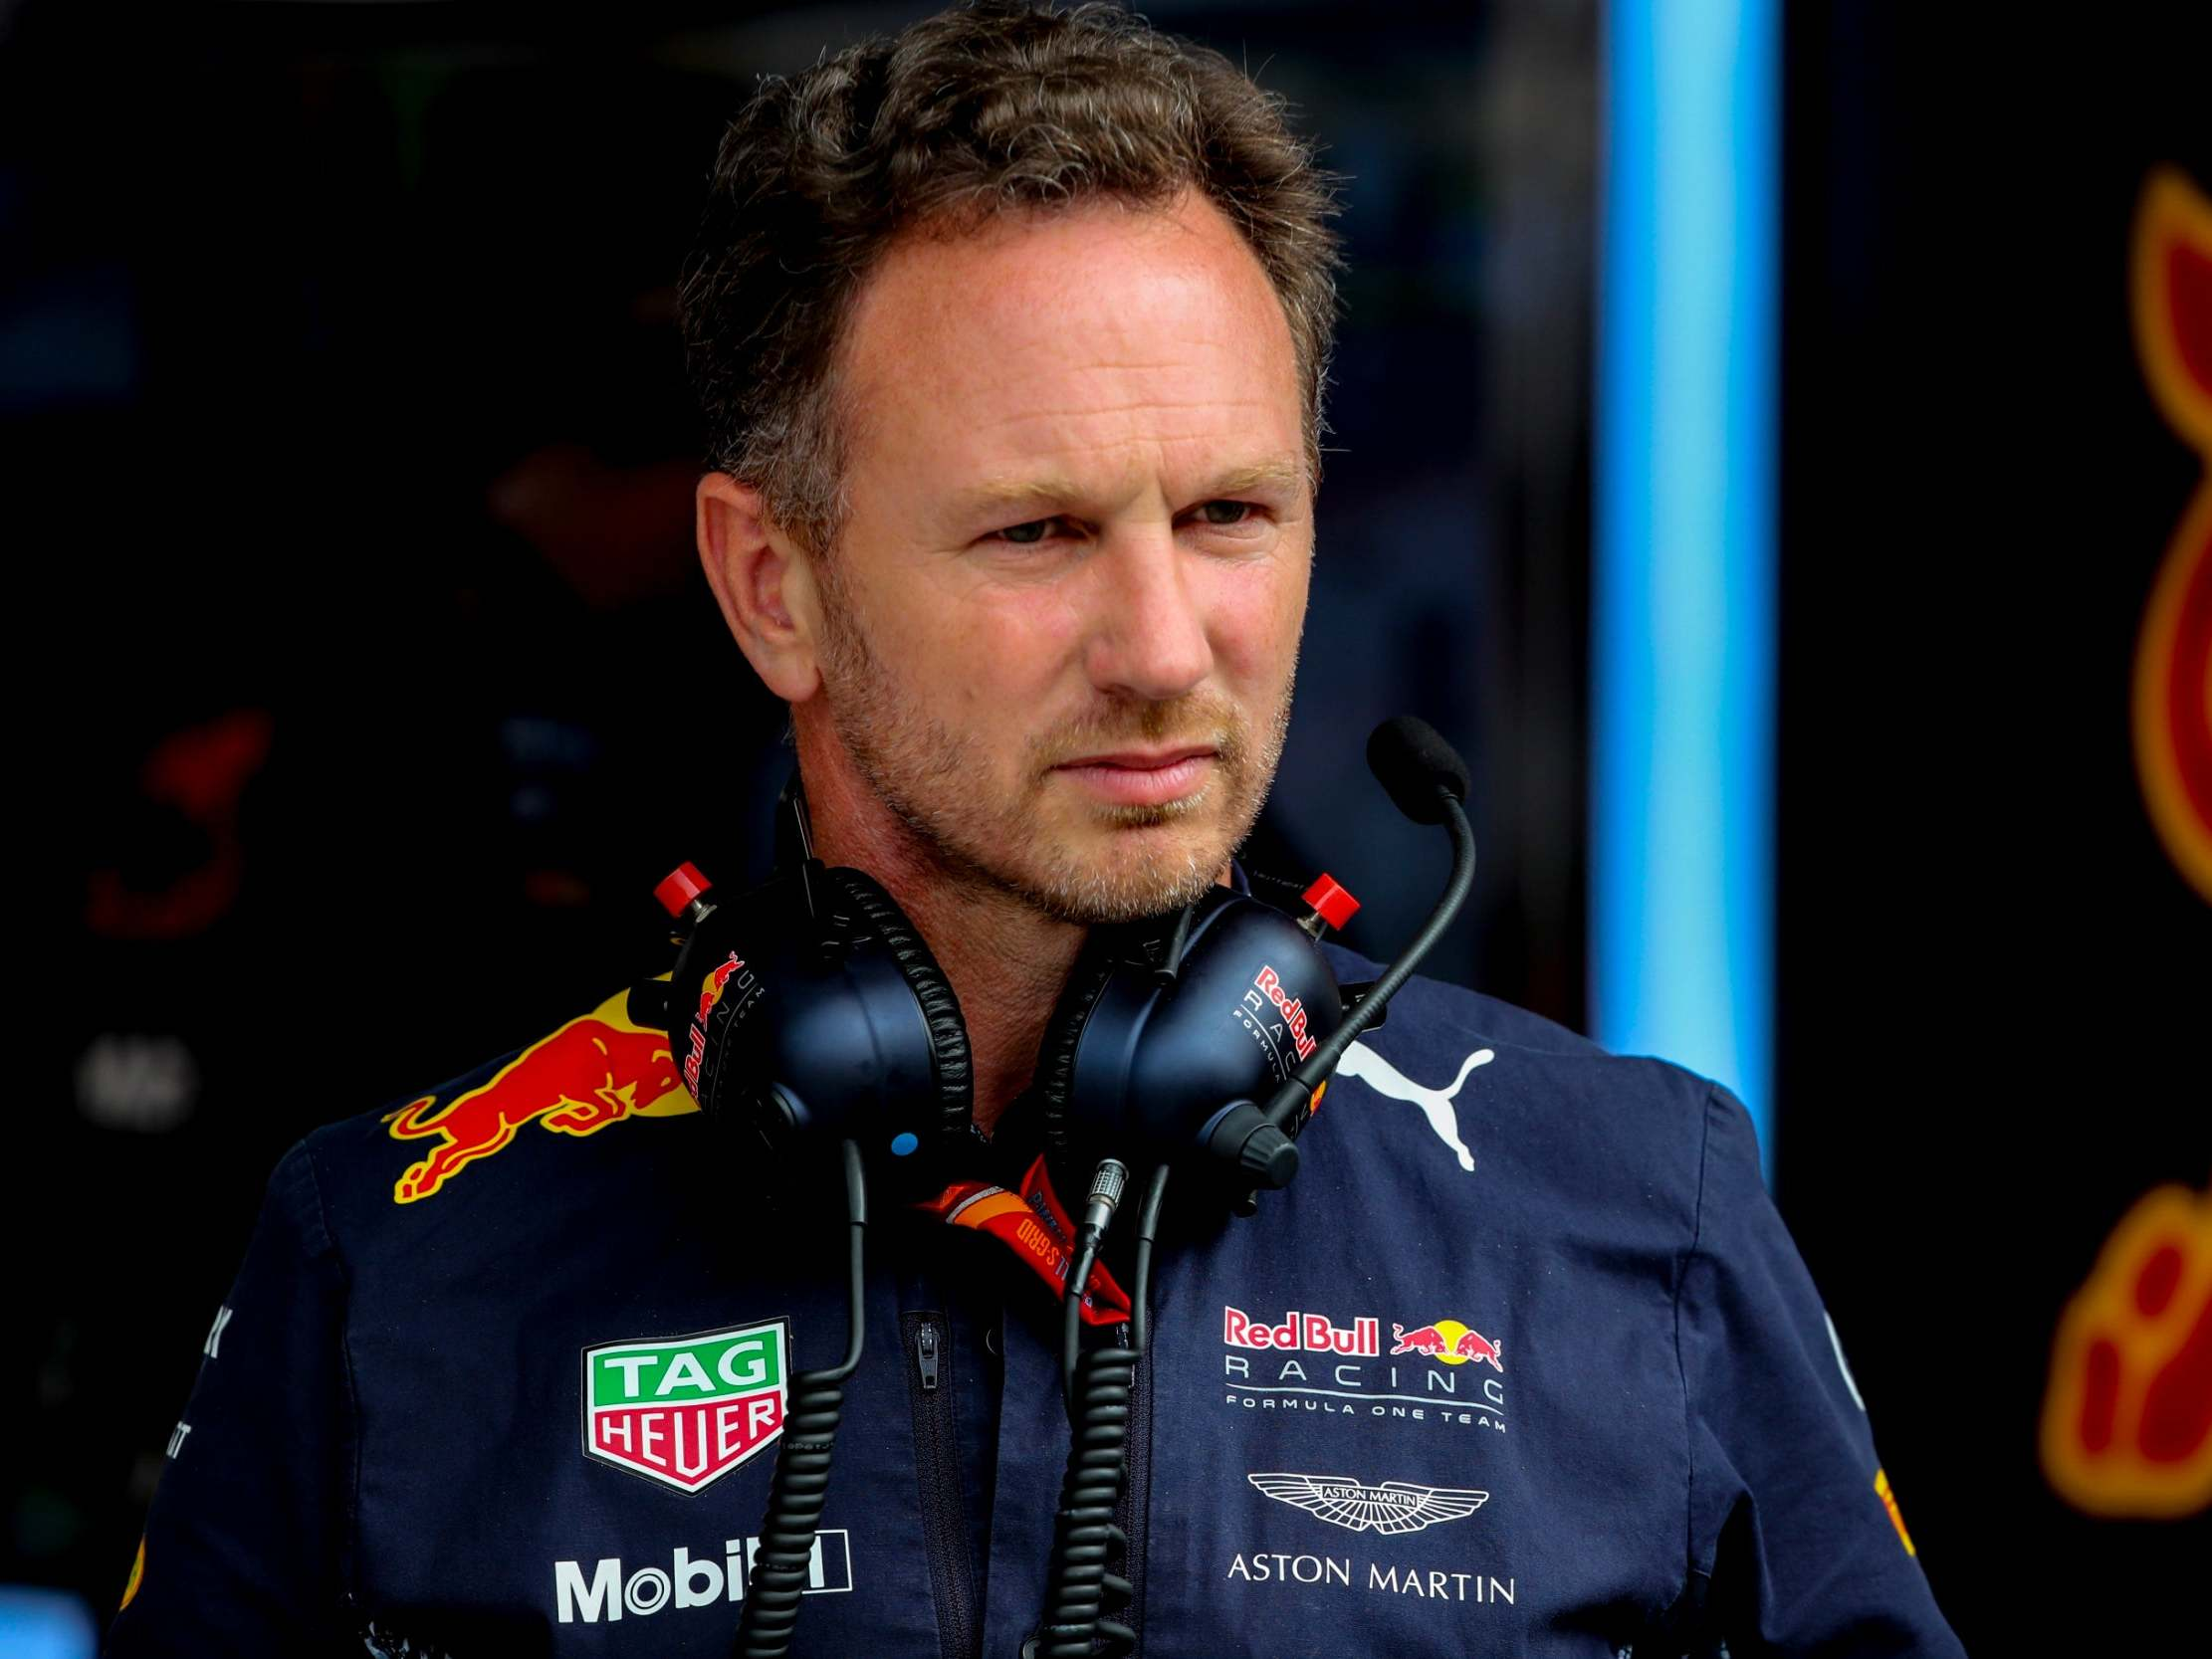 Mercedes opposed F1 reverse grid plan to protect Lewis Hamilton's championship hopes, says Christian Horner